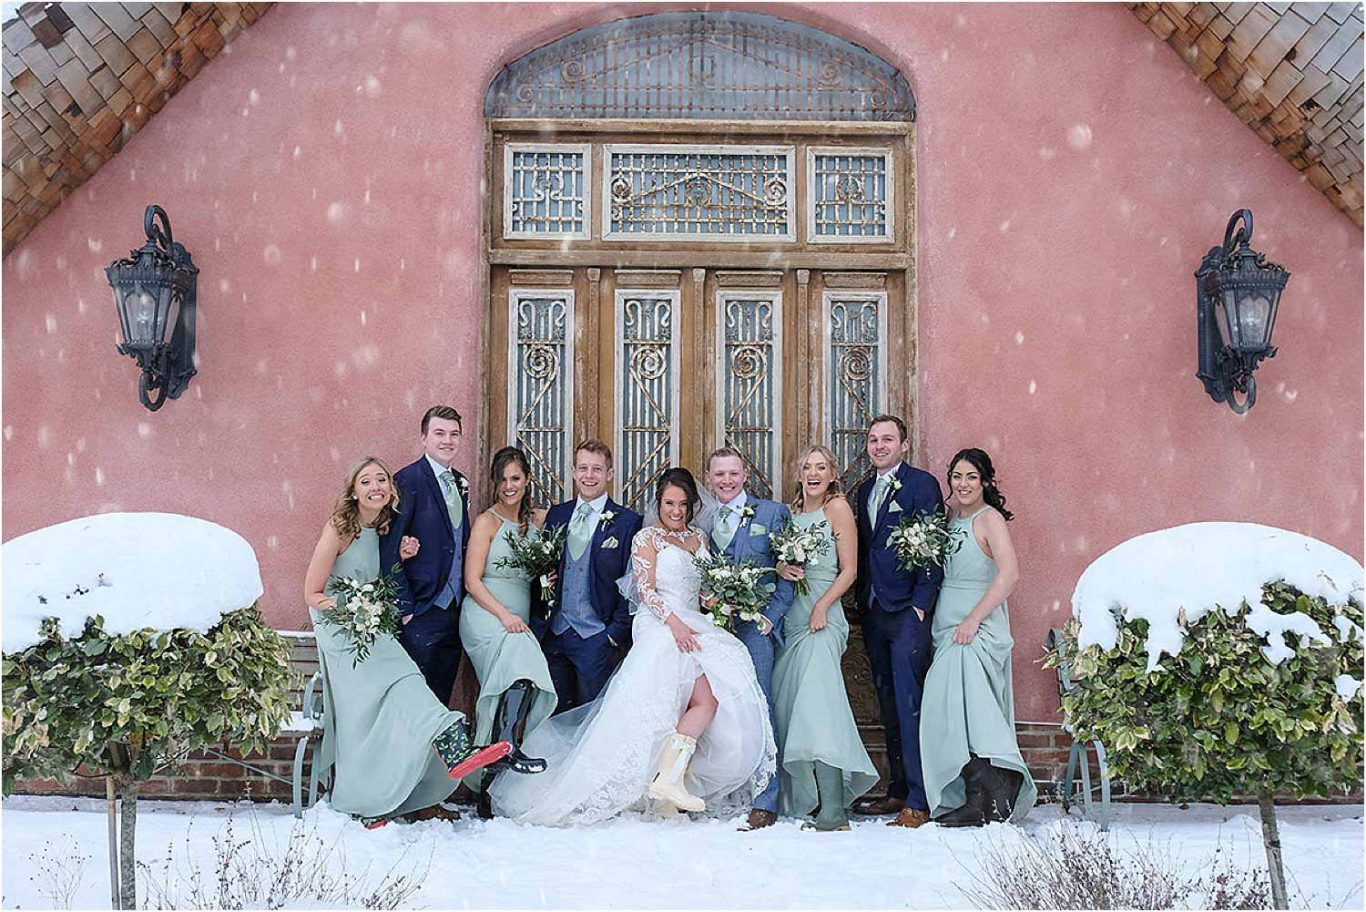 bridal party in snow